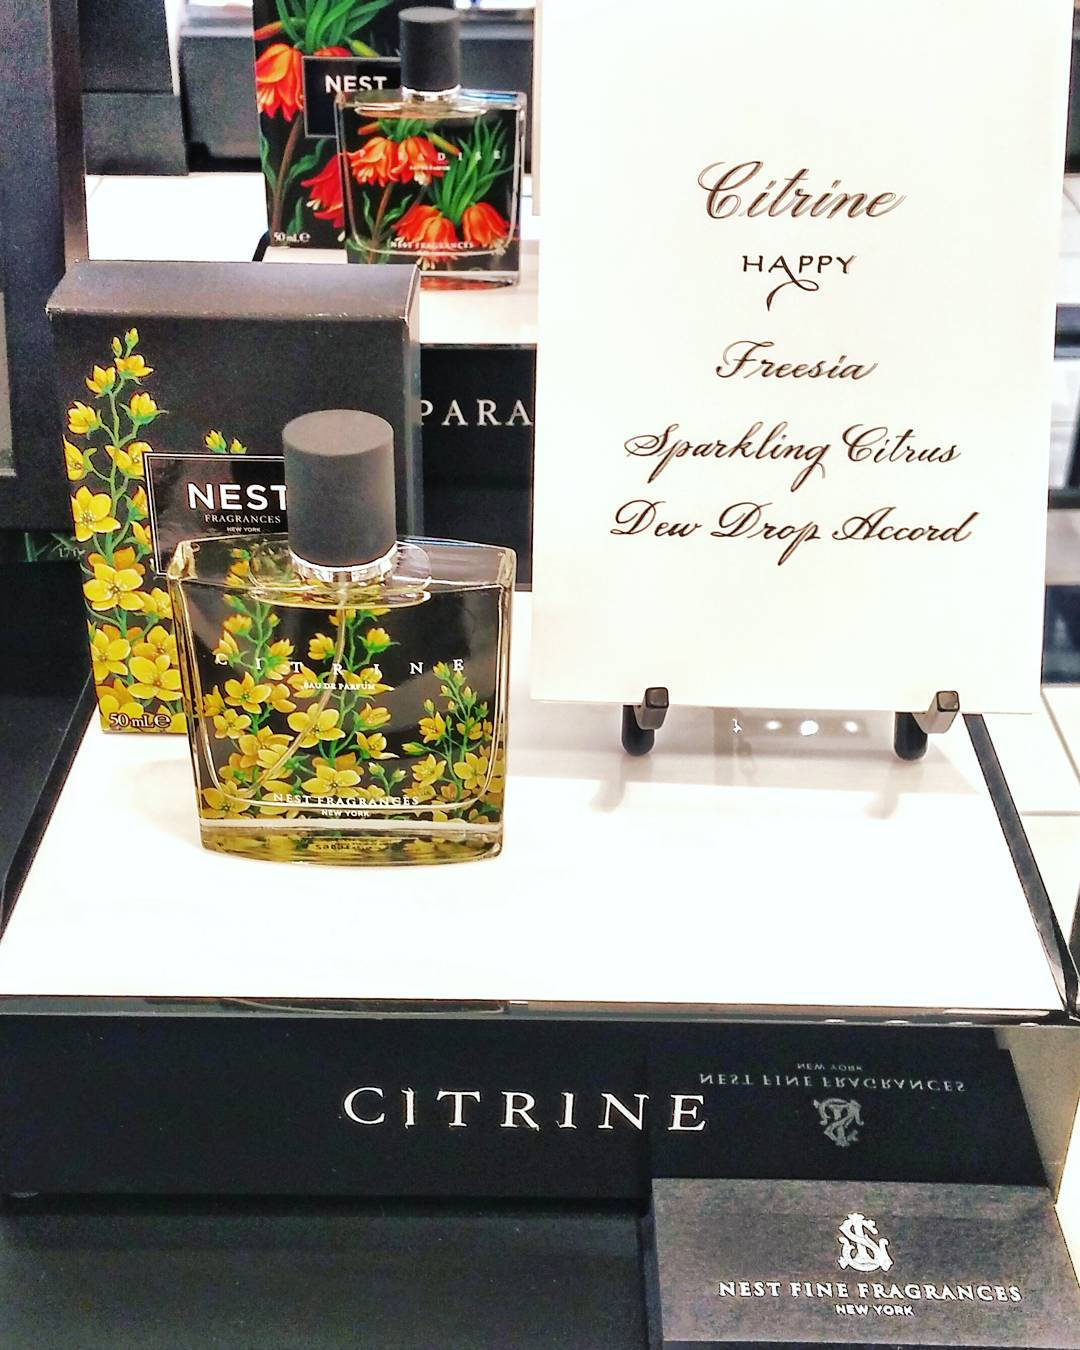 And then you smell something that just makes you feel happy - @nestfragrances's newest launch, #Citrine is by far one of the loveliest blends of notes I've smelled all year long. Check out the entire collection at the largest @sephoracanada location in *North America* @yongeeglintoncentre - opening today!